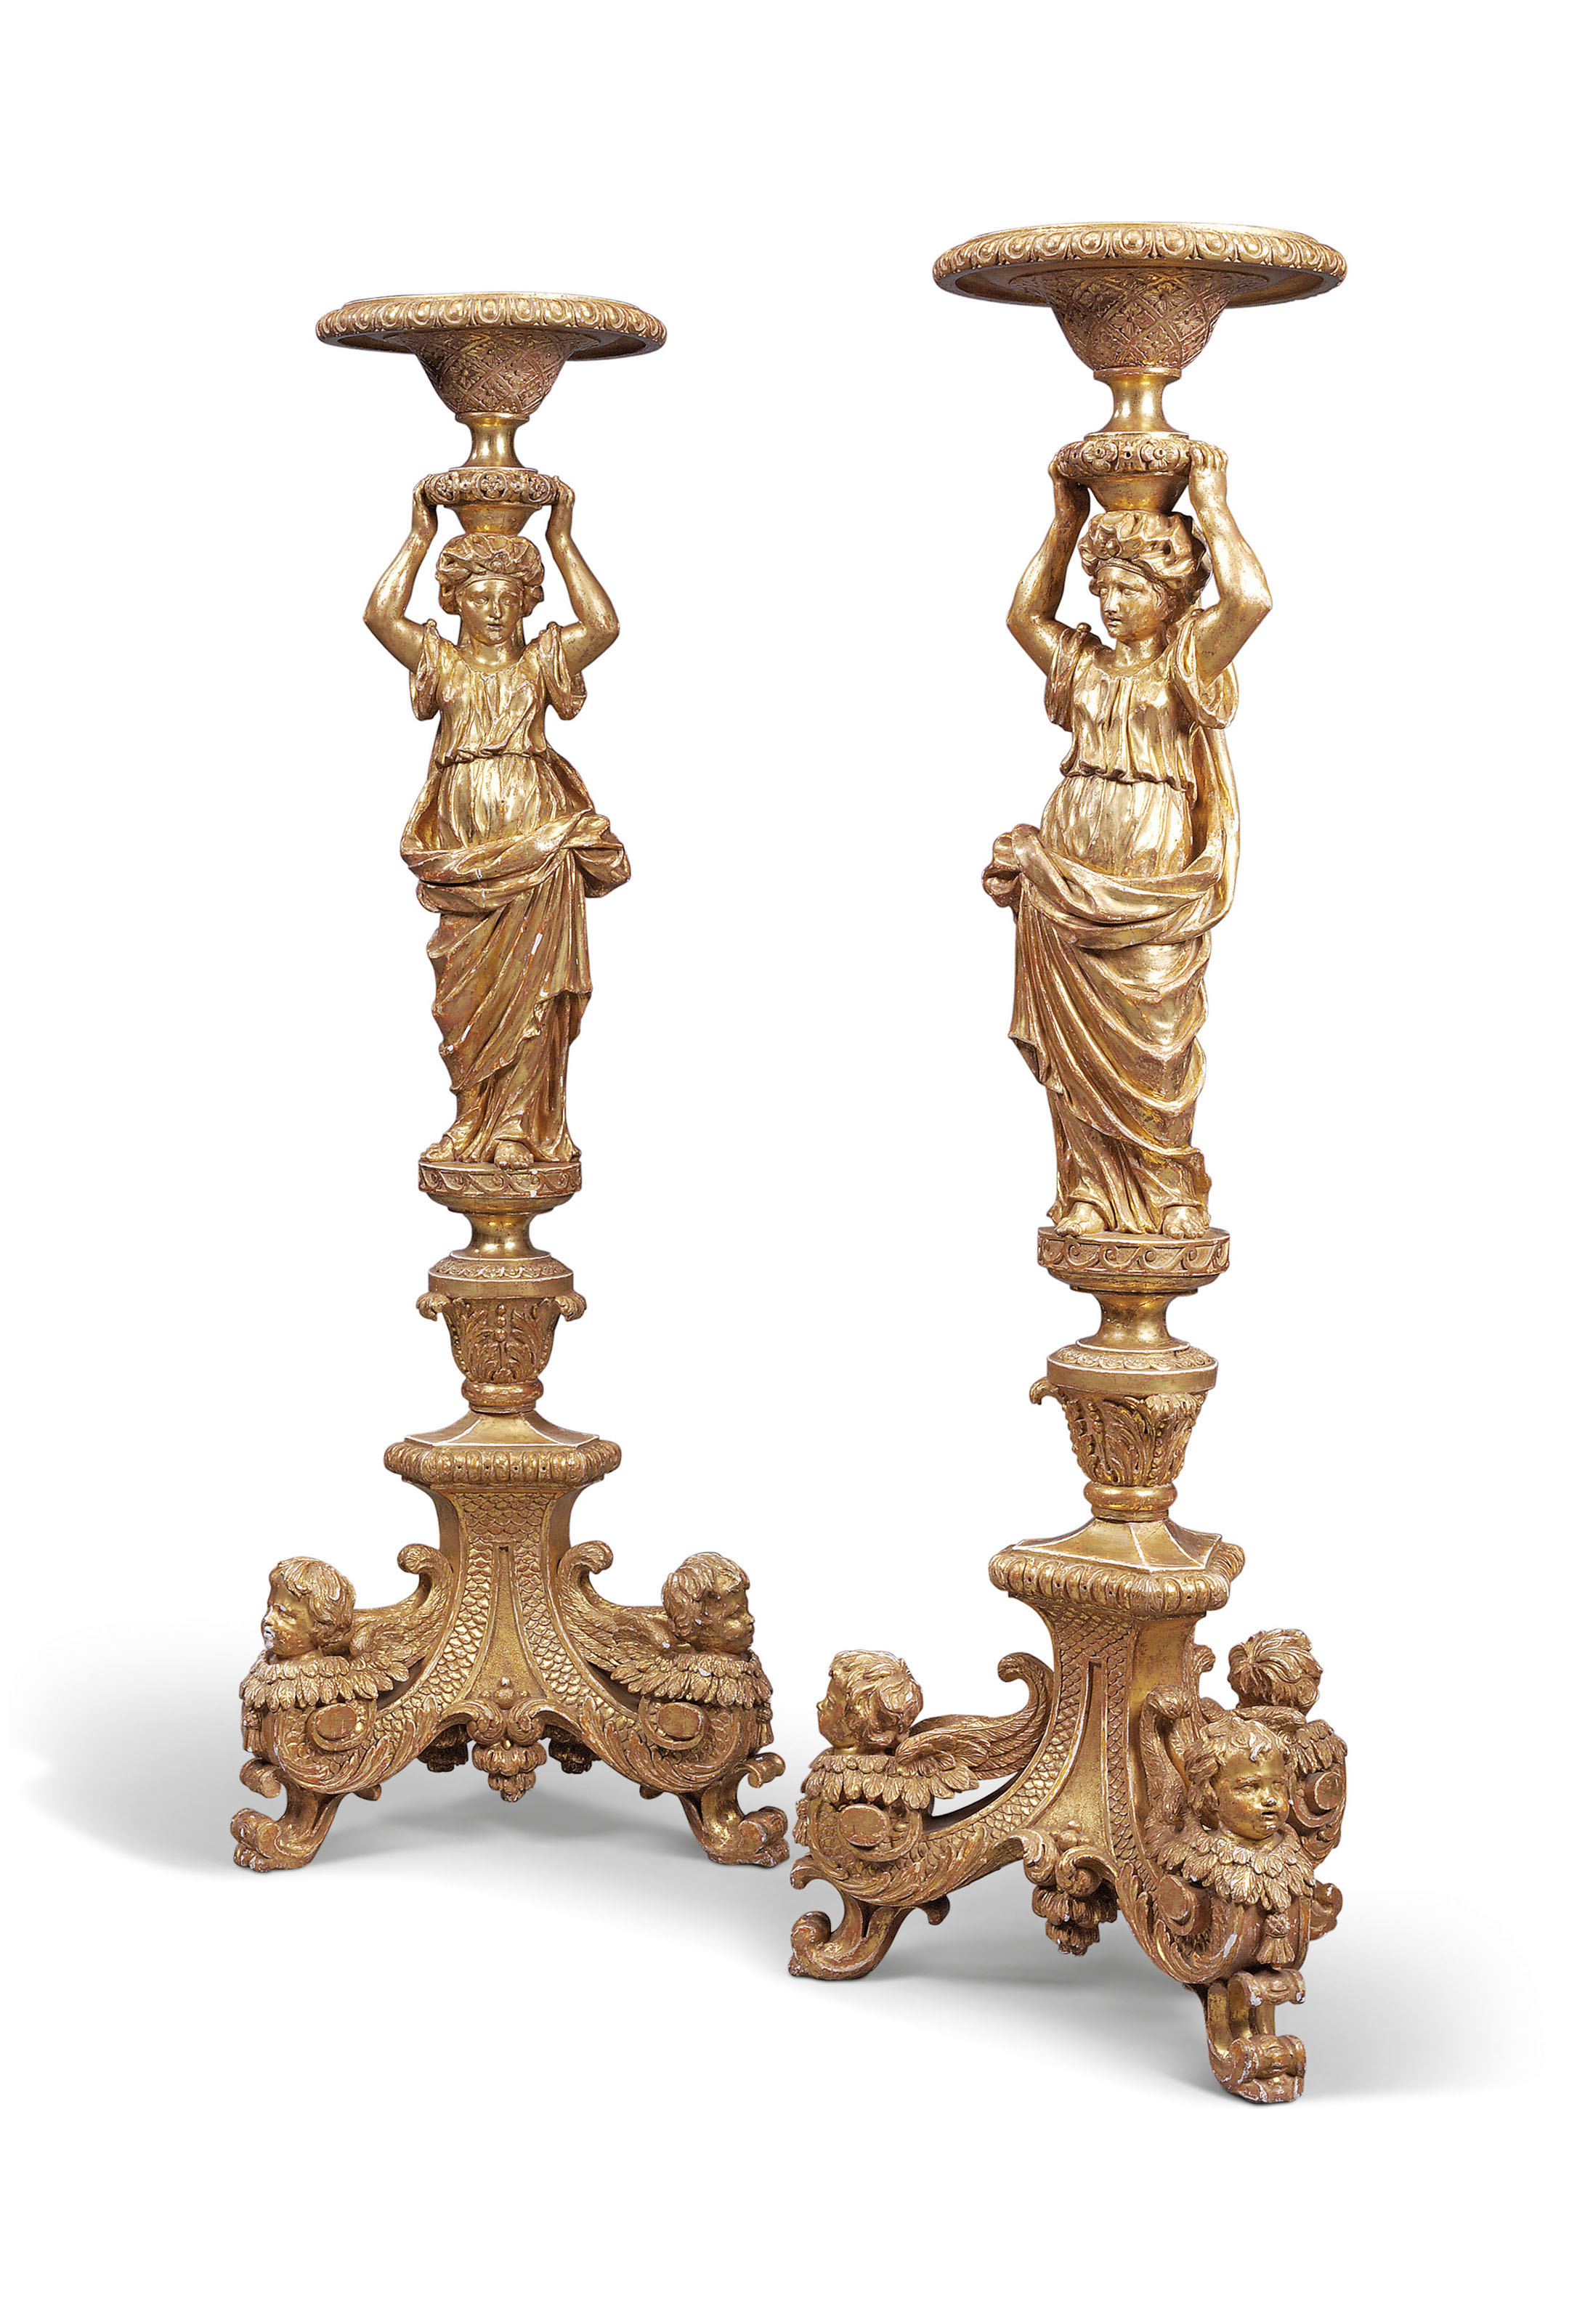 A PAIR OF GEORGE II GILTWOOD TORCHERES